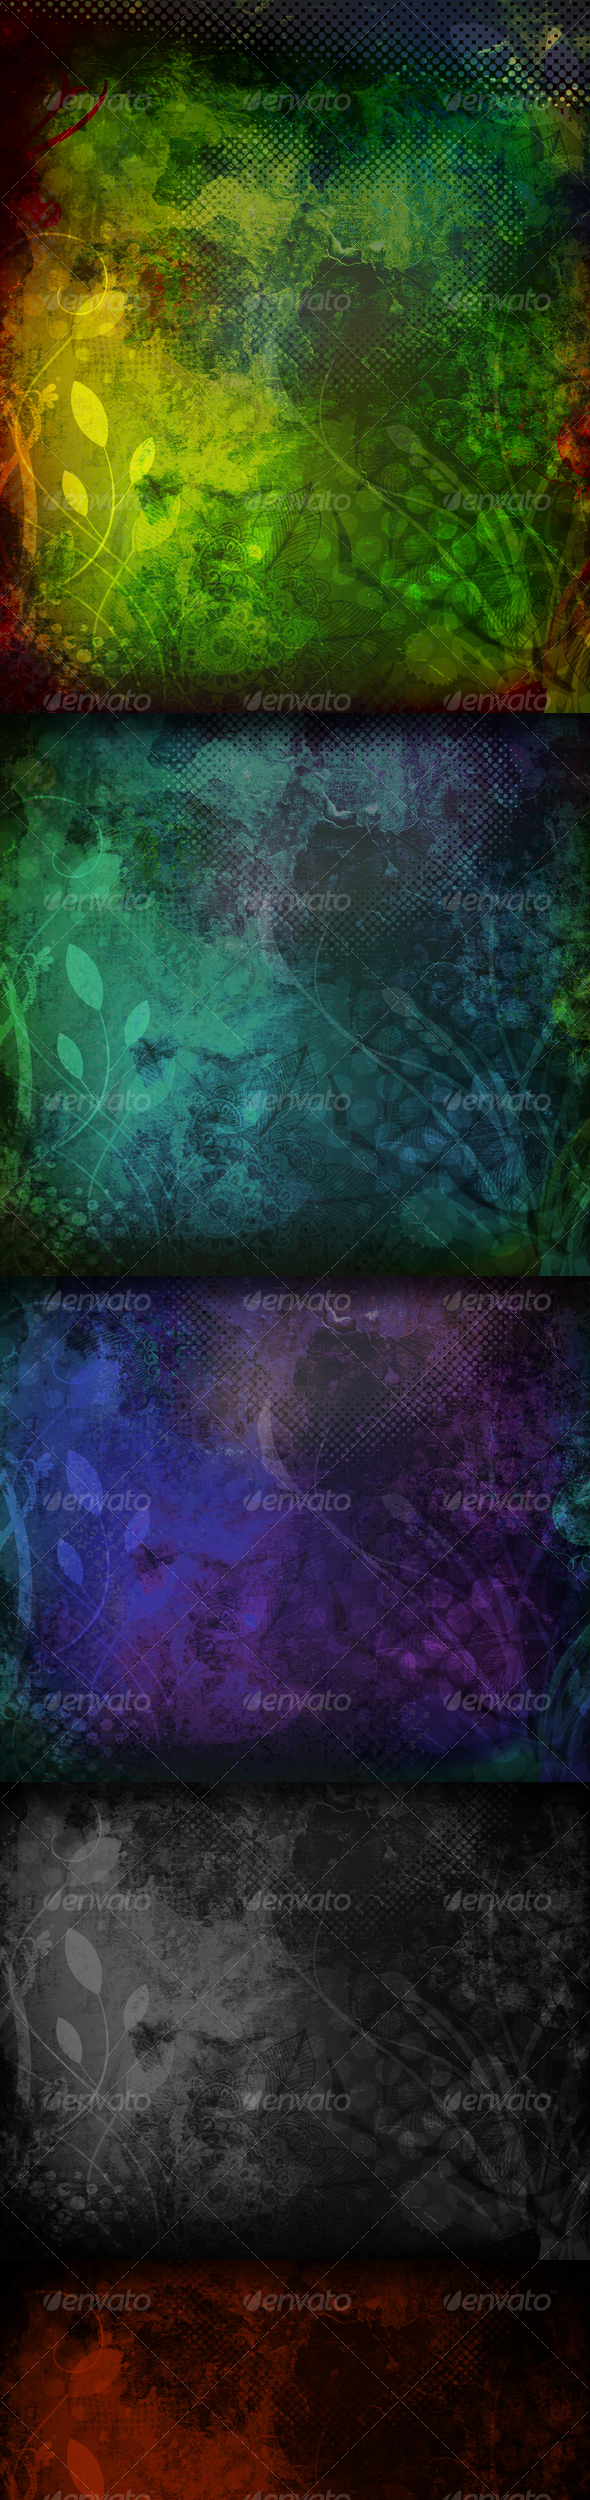 Grunge Dark Flourish Textures and Backgrounds - Backgrounds Graphics